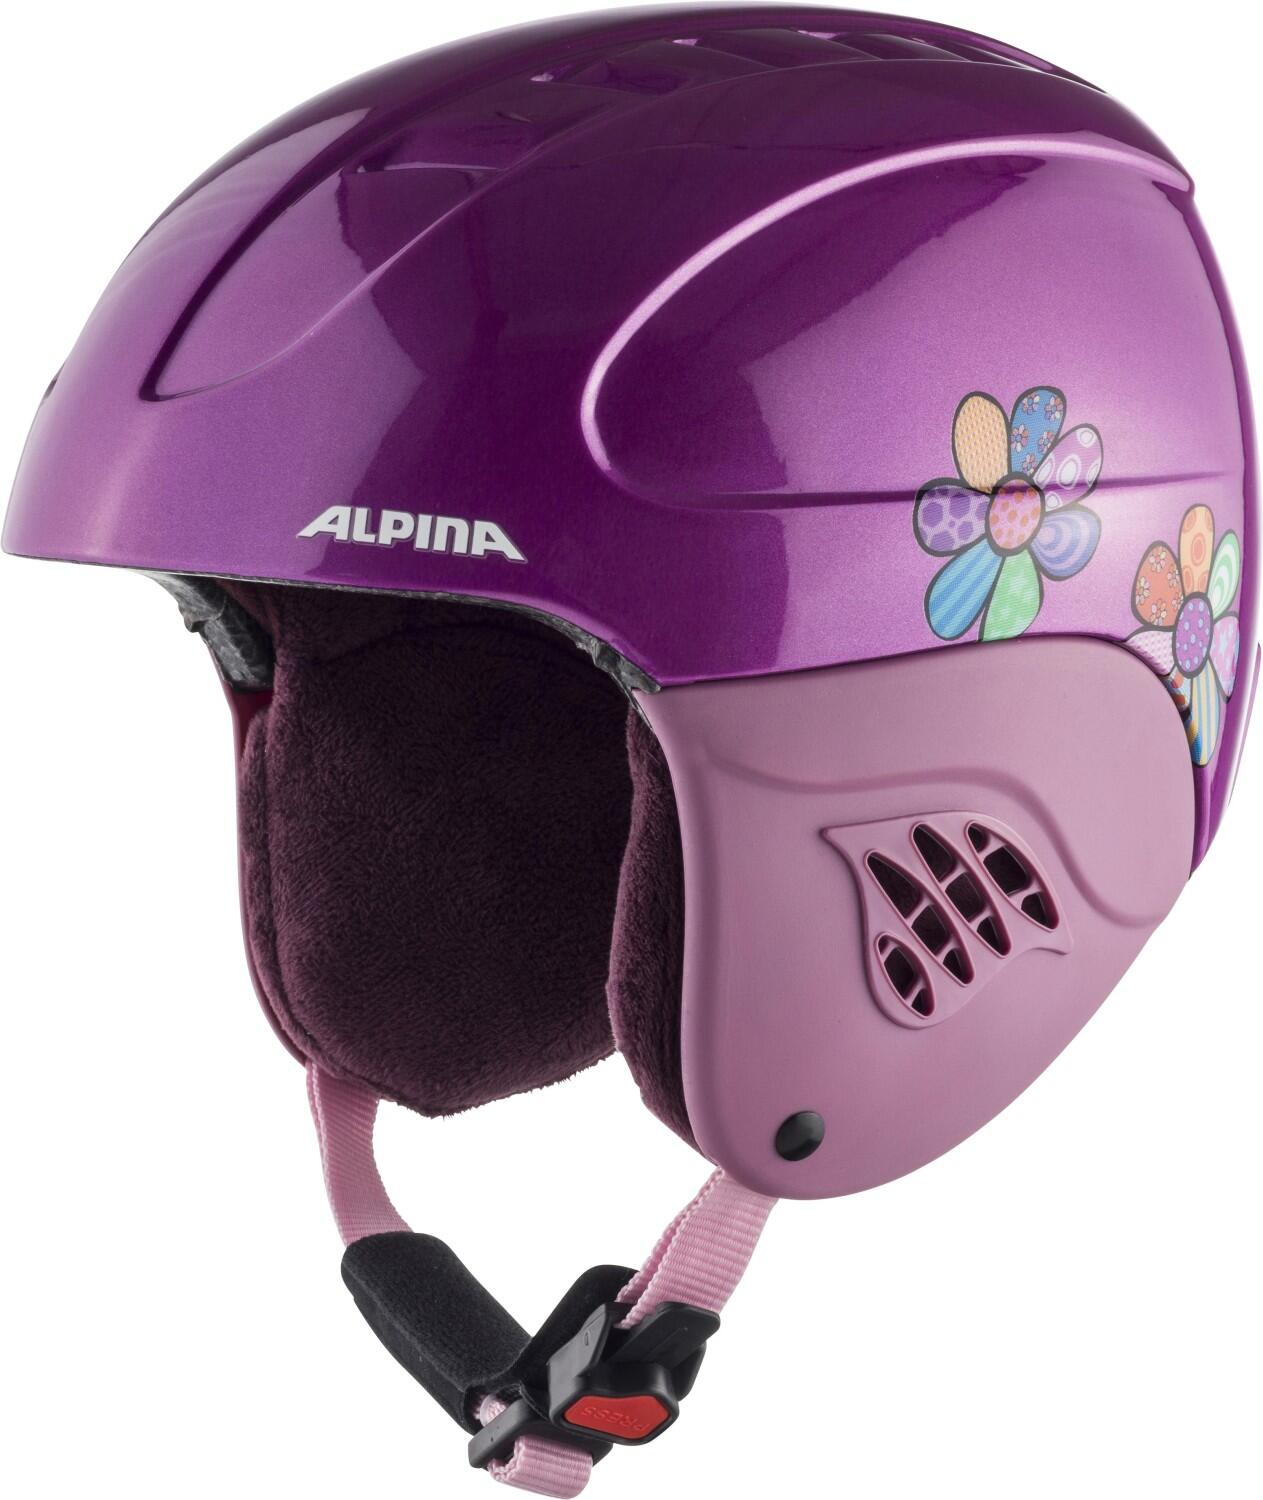 Fürski - Alpina Carat Kinder Skihelm (Größe 51 55 cm, 61 happy flowers) - Onlineshop